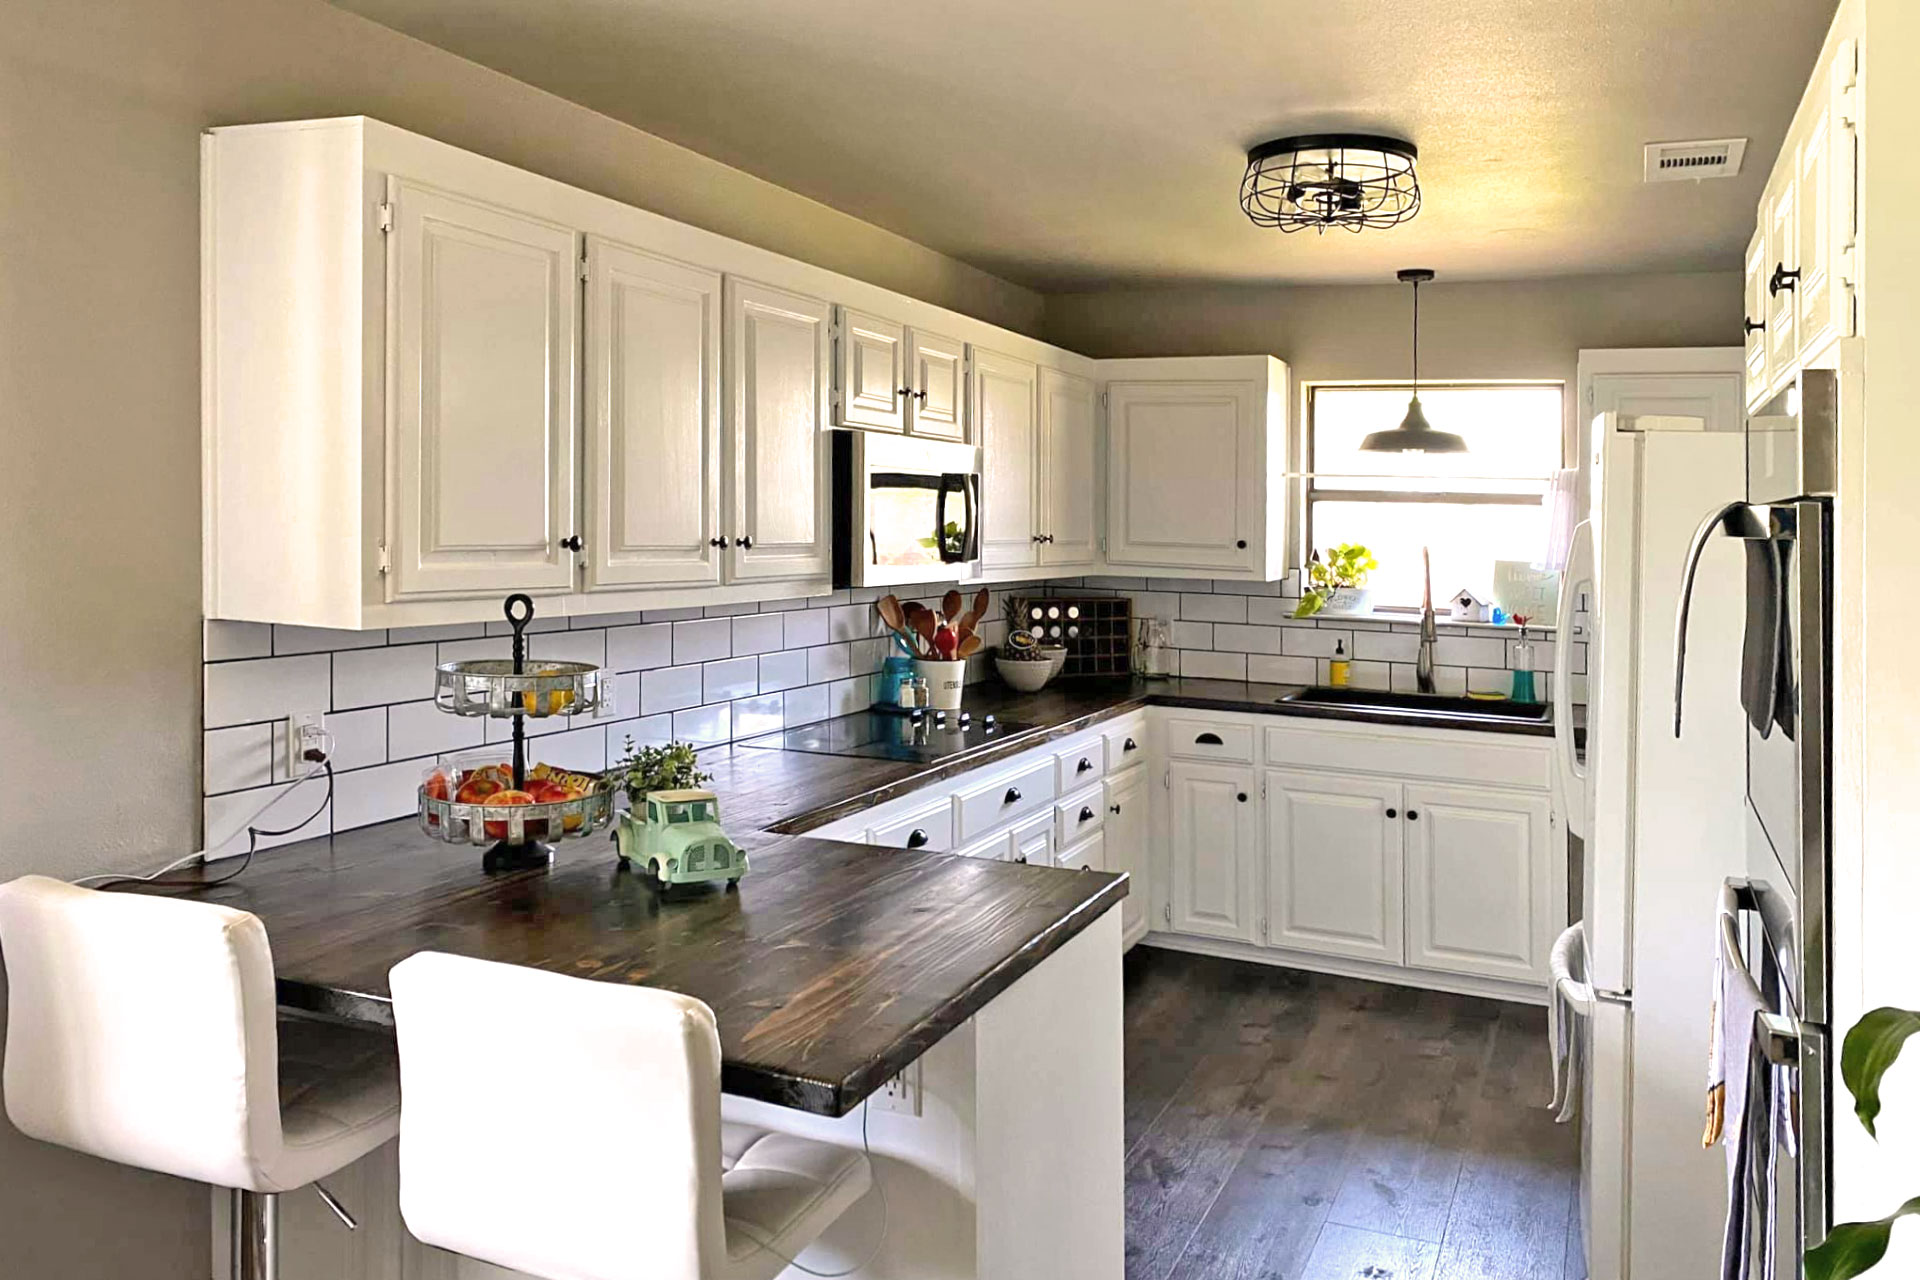 Kitchen and Bathroom Remodeling